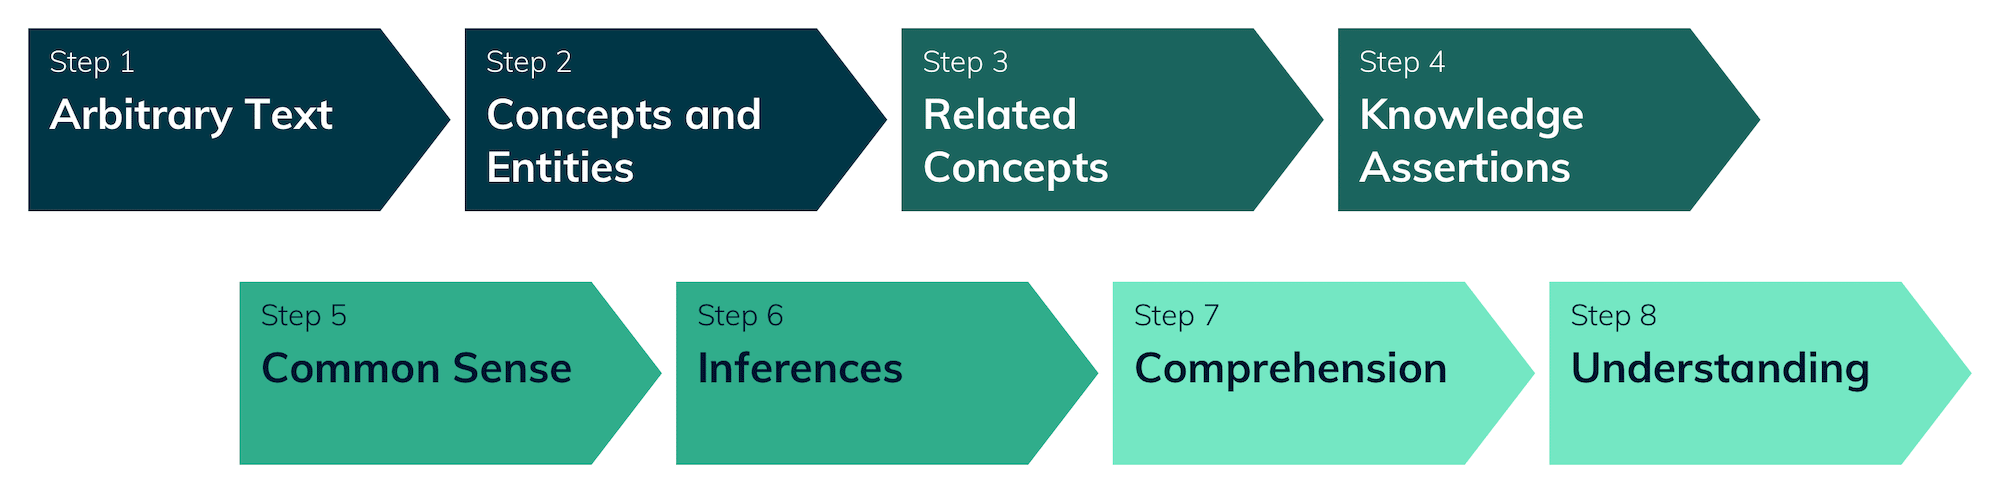 Step 1 Arbitrary Text, Step 2 Concepts and Entities, Step 3 Related Concepts, Step 4 Knowledge Assertions, Step 5 Common Sense, Step 6 Inferences, Step 7 Comprehension, Step 8 Understanding